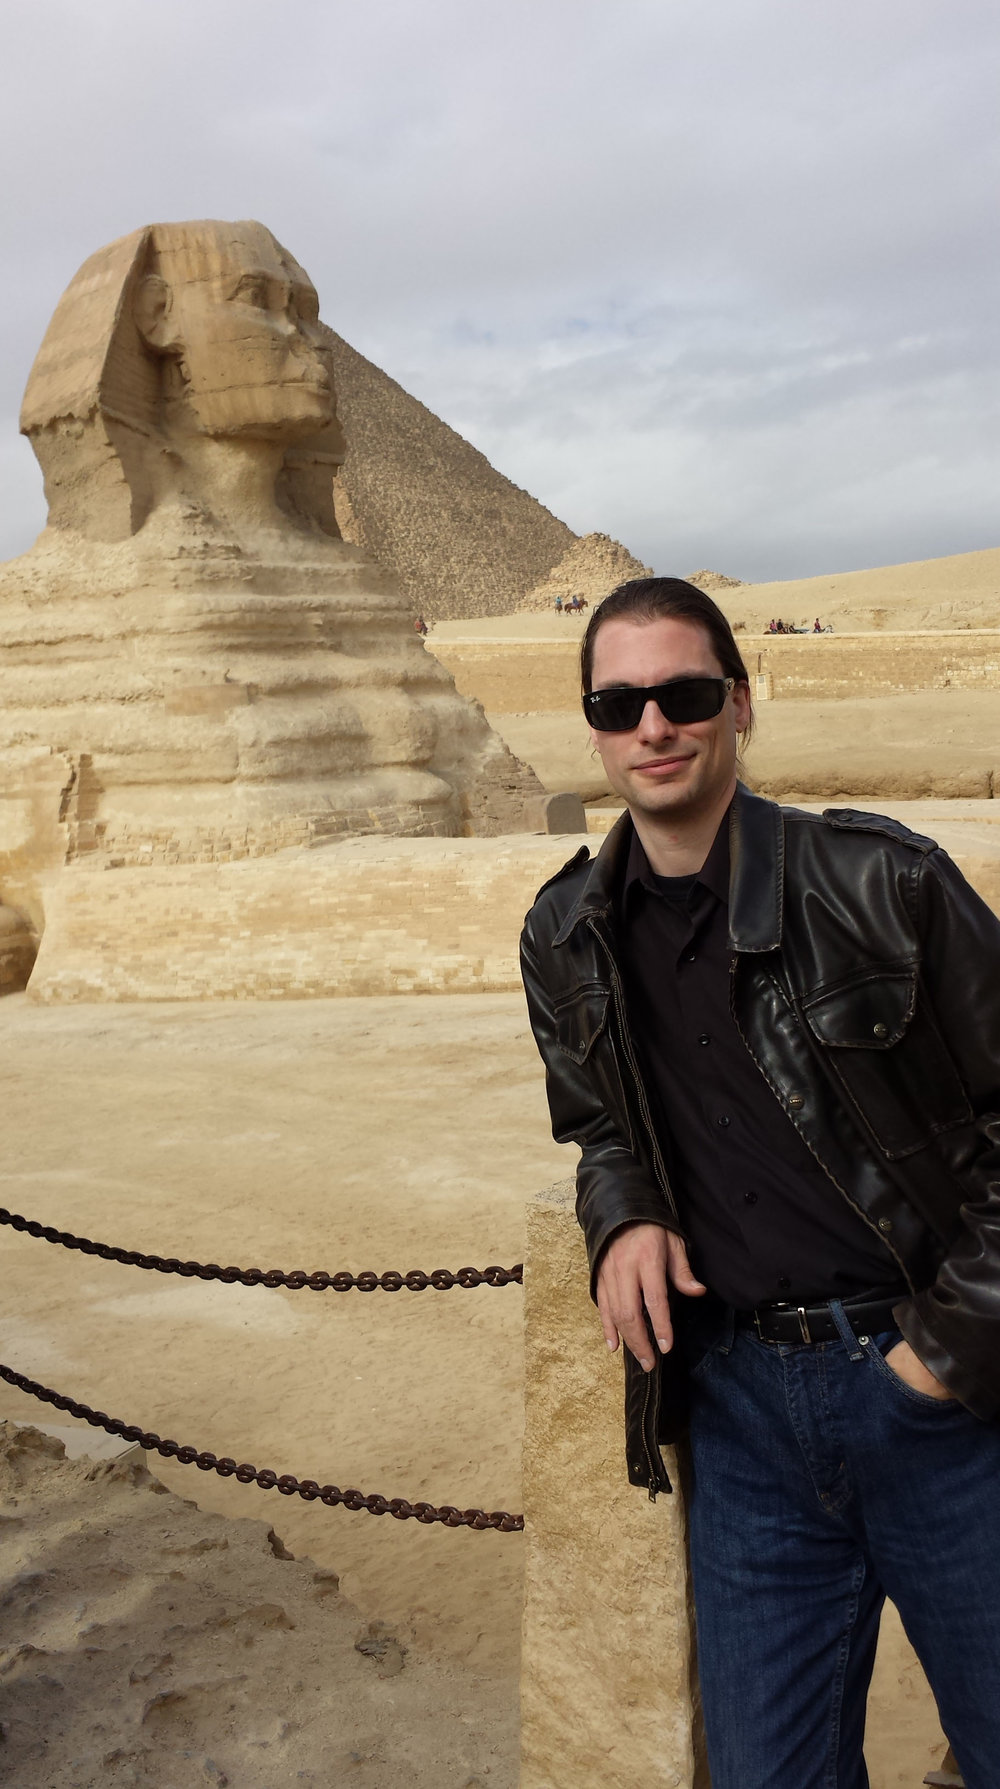 Some smug fool posing with the sphinx.